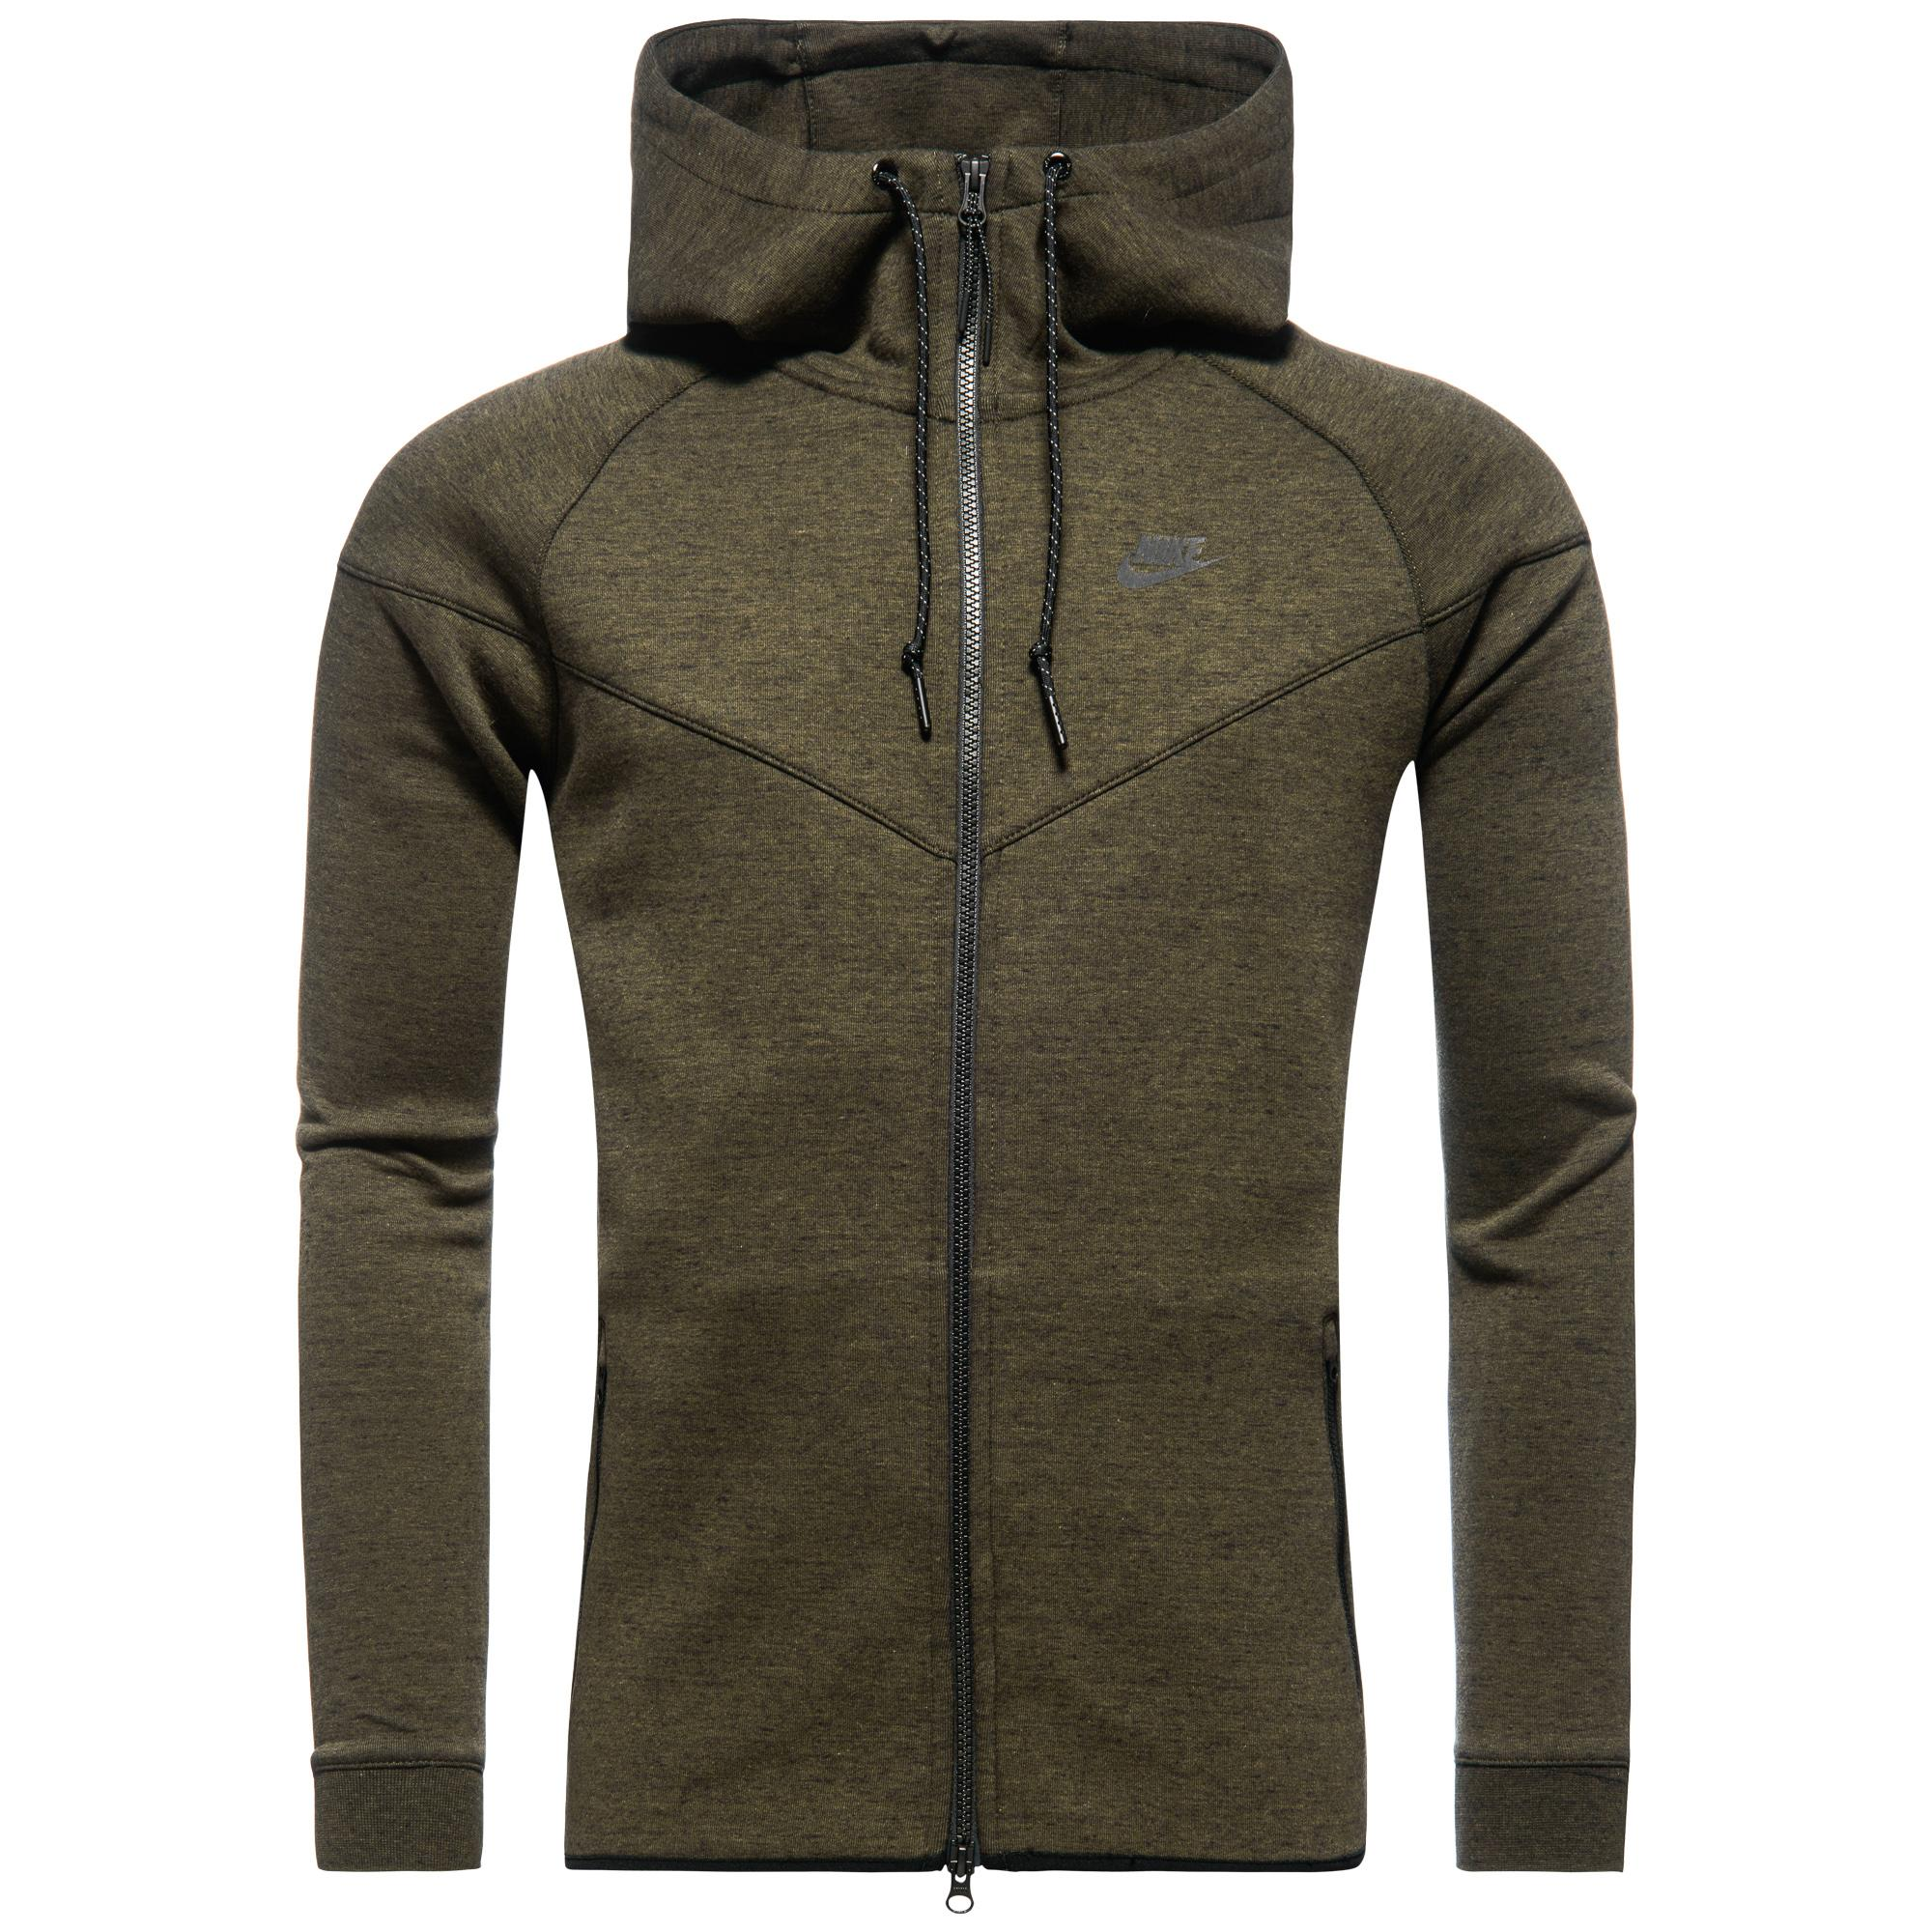 Nike Tech Fleece Windrunner Grön/Svart